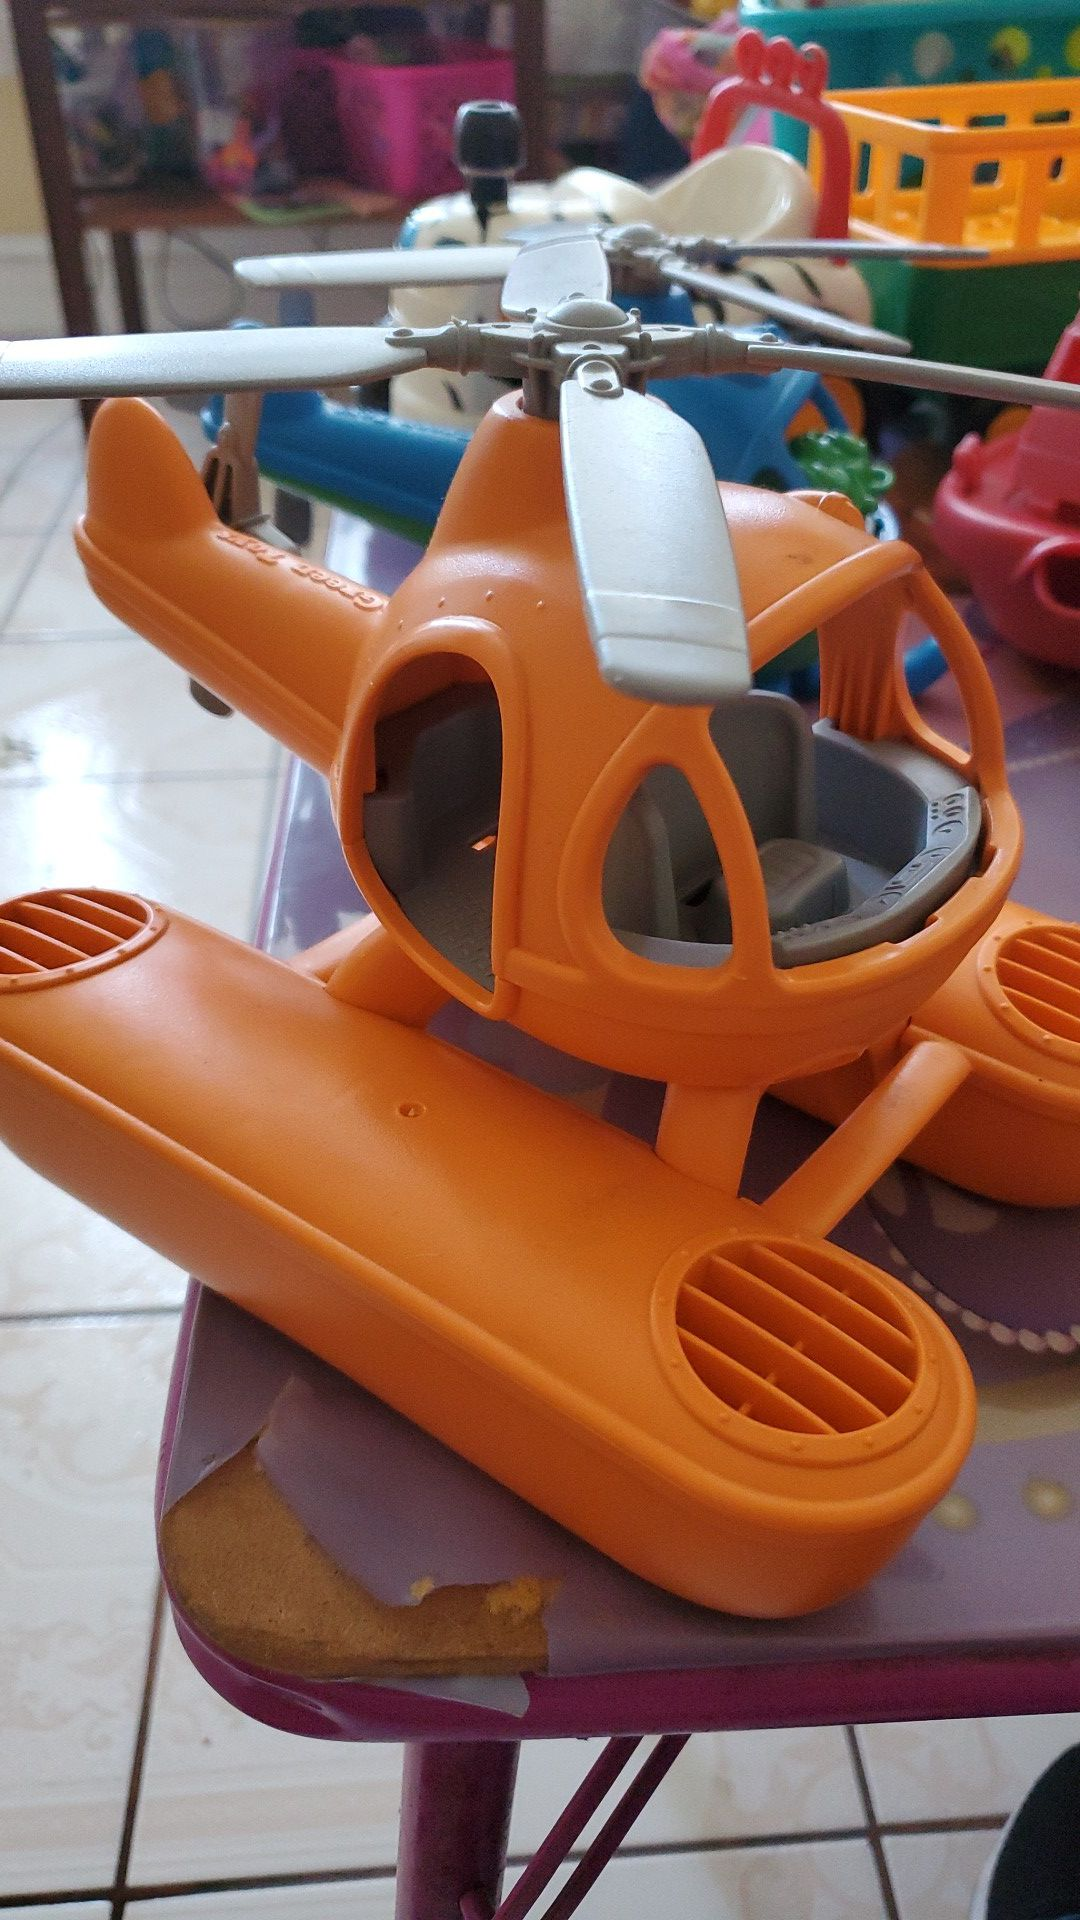 Helicopter toy